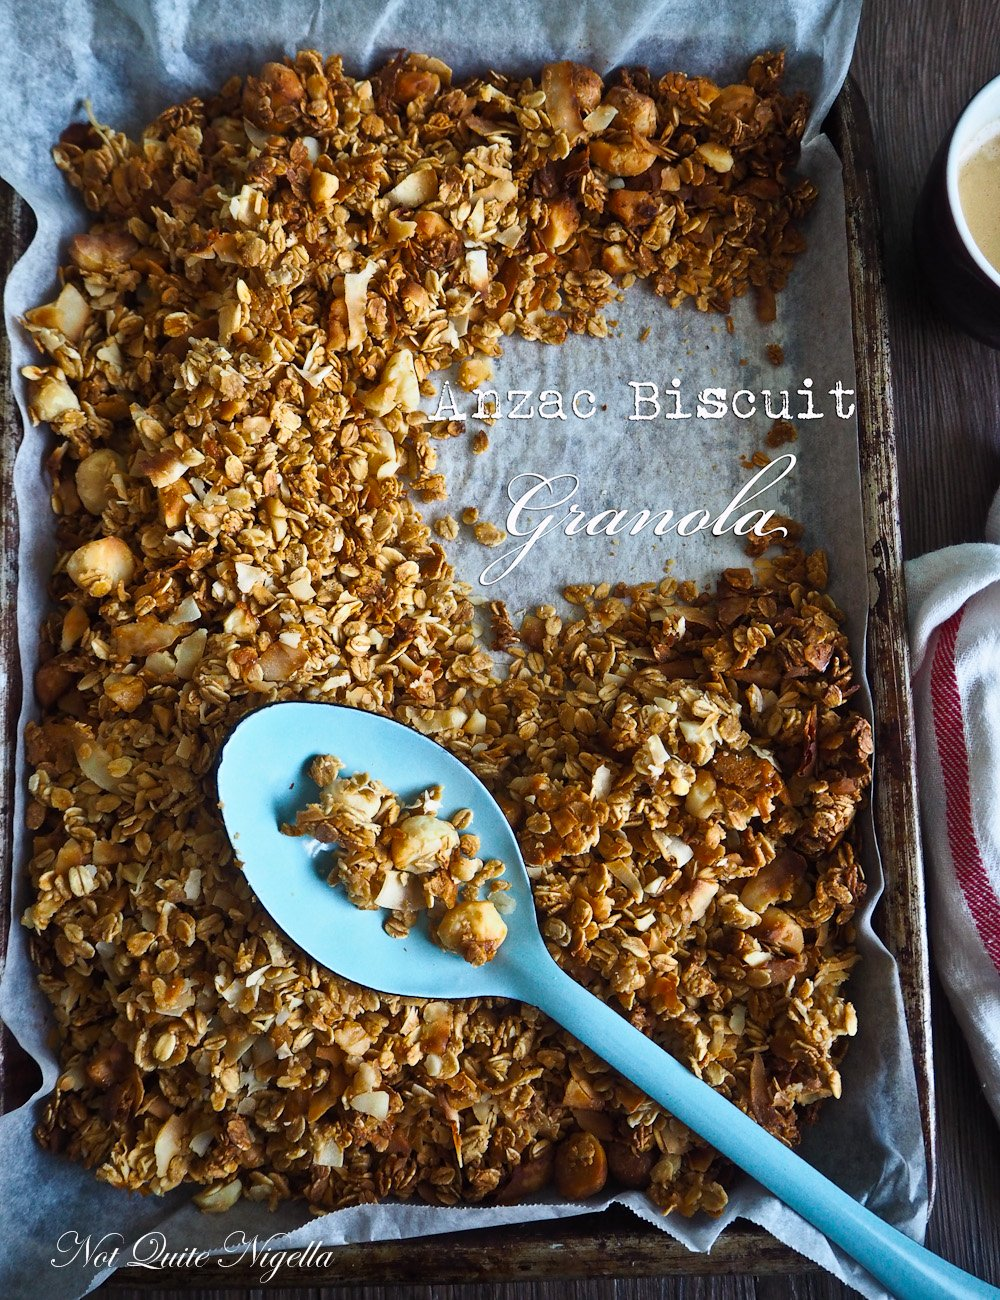 Anzac Biscuit Granola